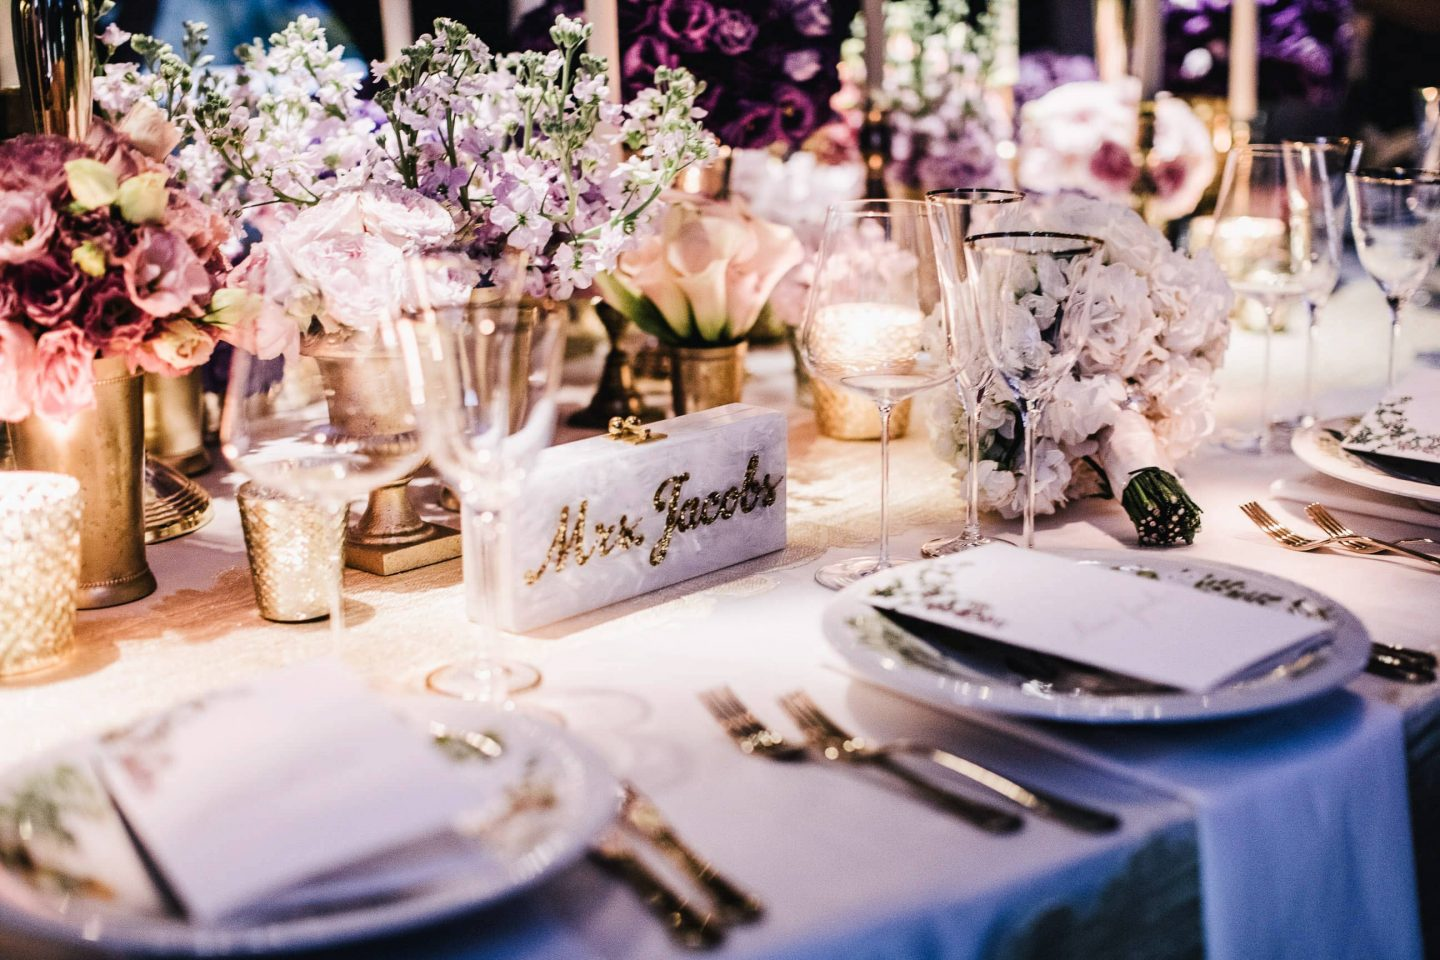 Table decor for reception at this Positano wedding weekend in Villa Tre Ville | Photo by Gianni di Natale